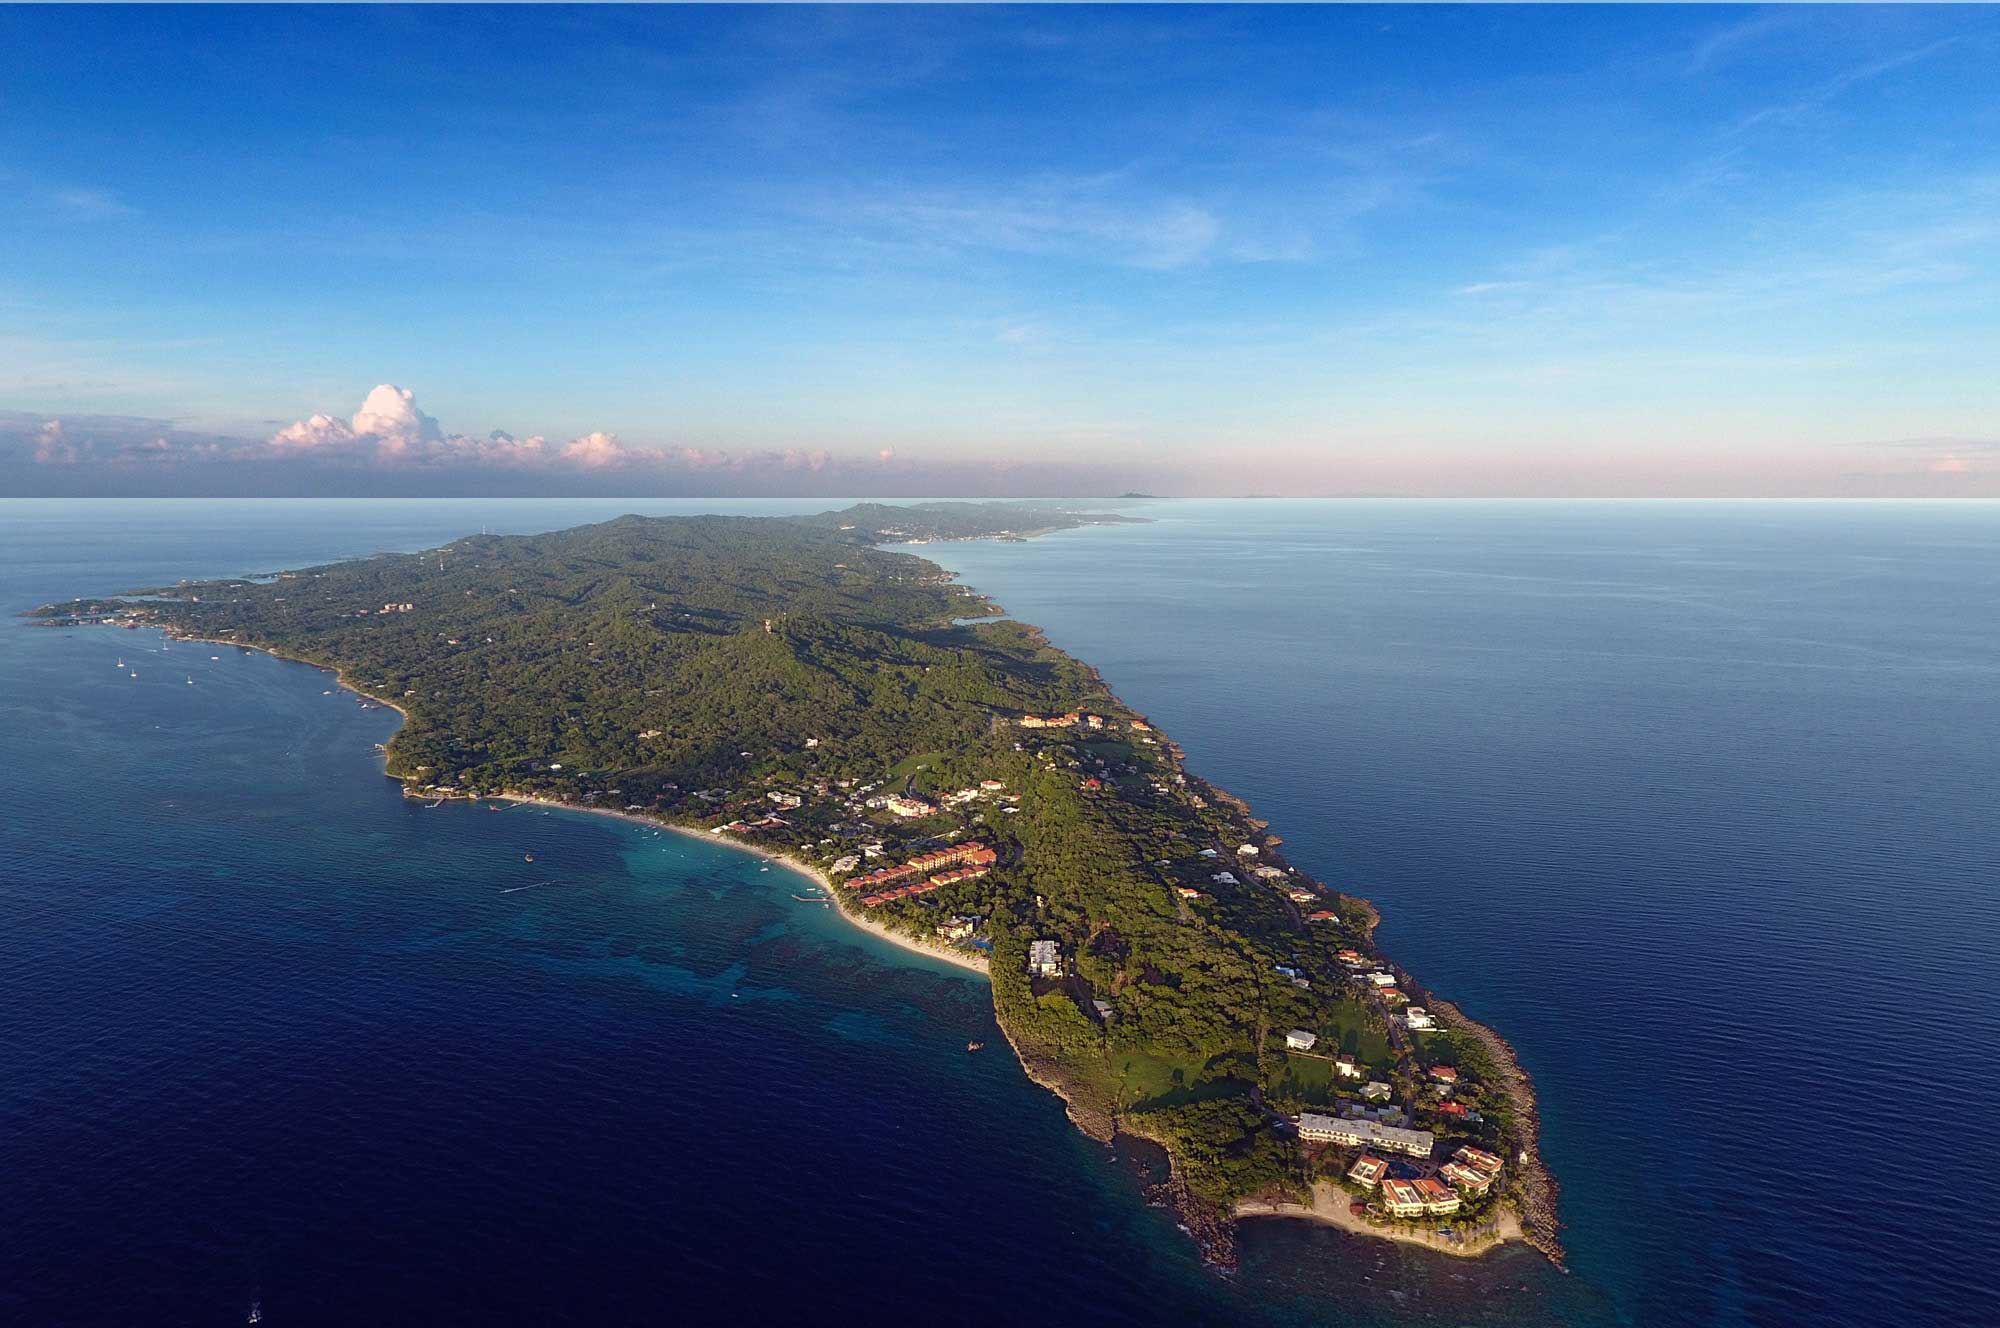 The Western tip of Roatan Island, Bay Islands, Honduras. The beach in the foreground is West Bay, West End to the far left.